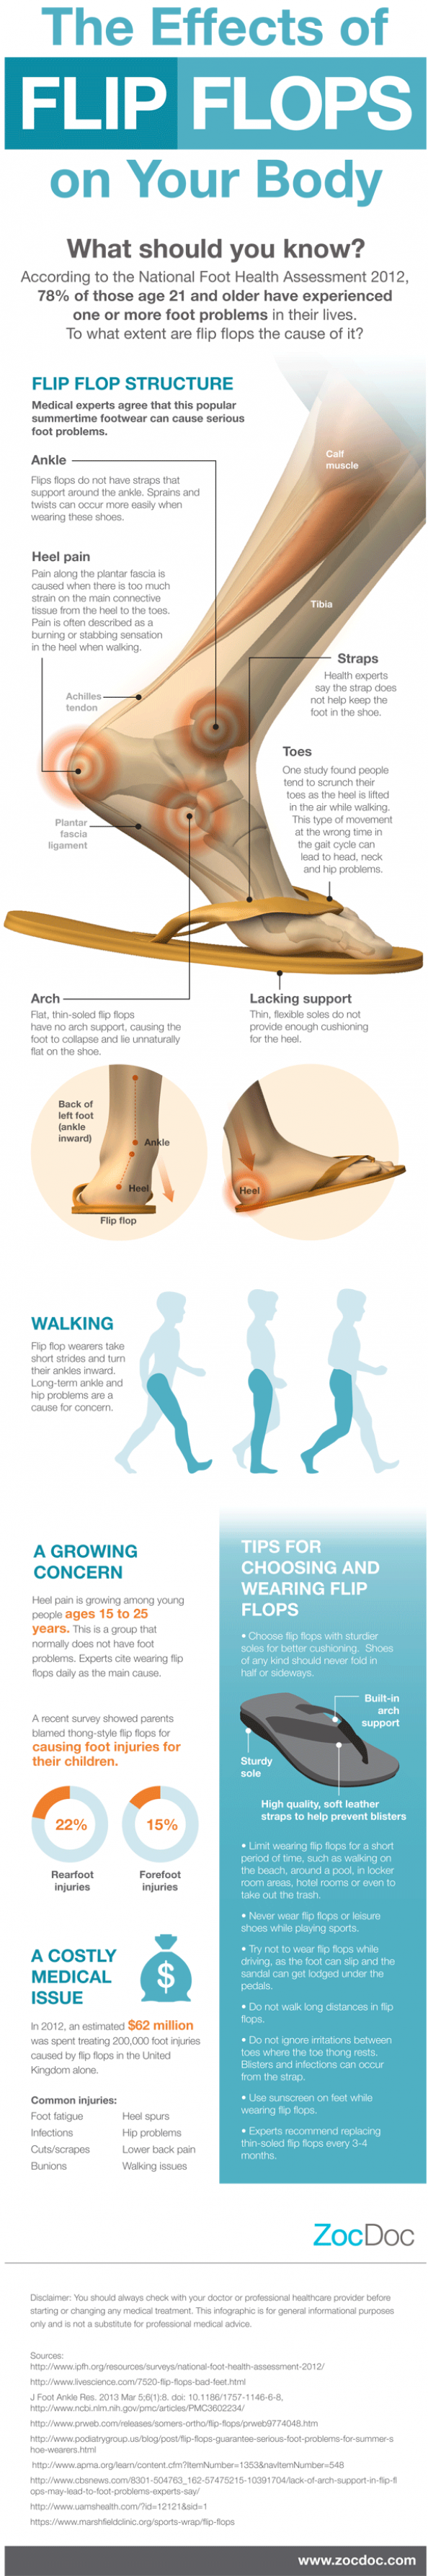 Health Effects Of Flip Flops On Your Feet